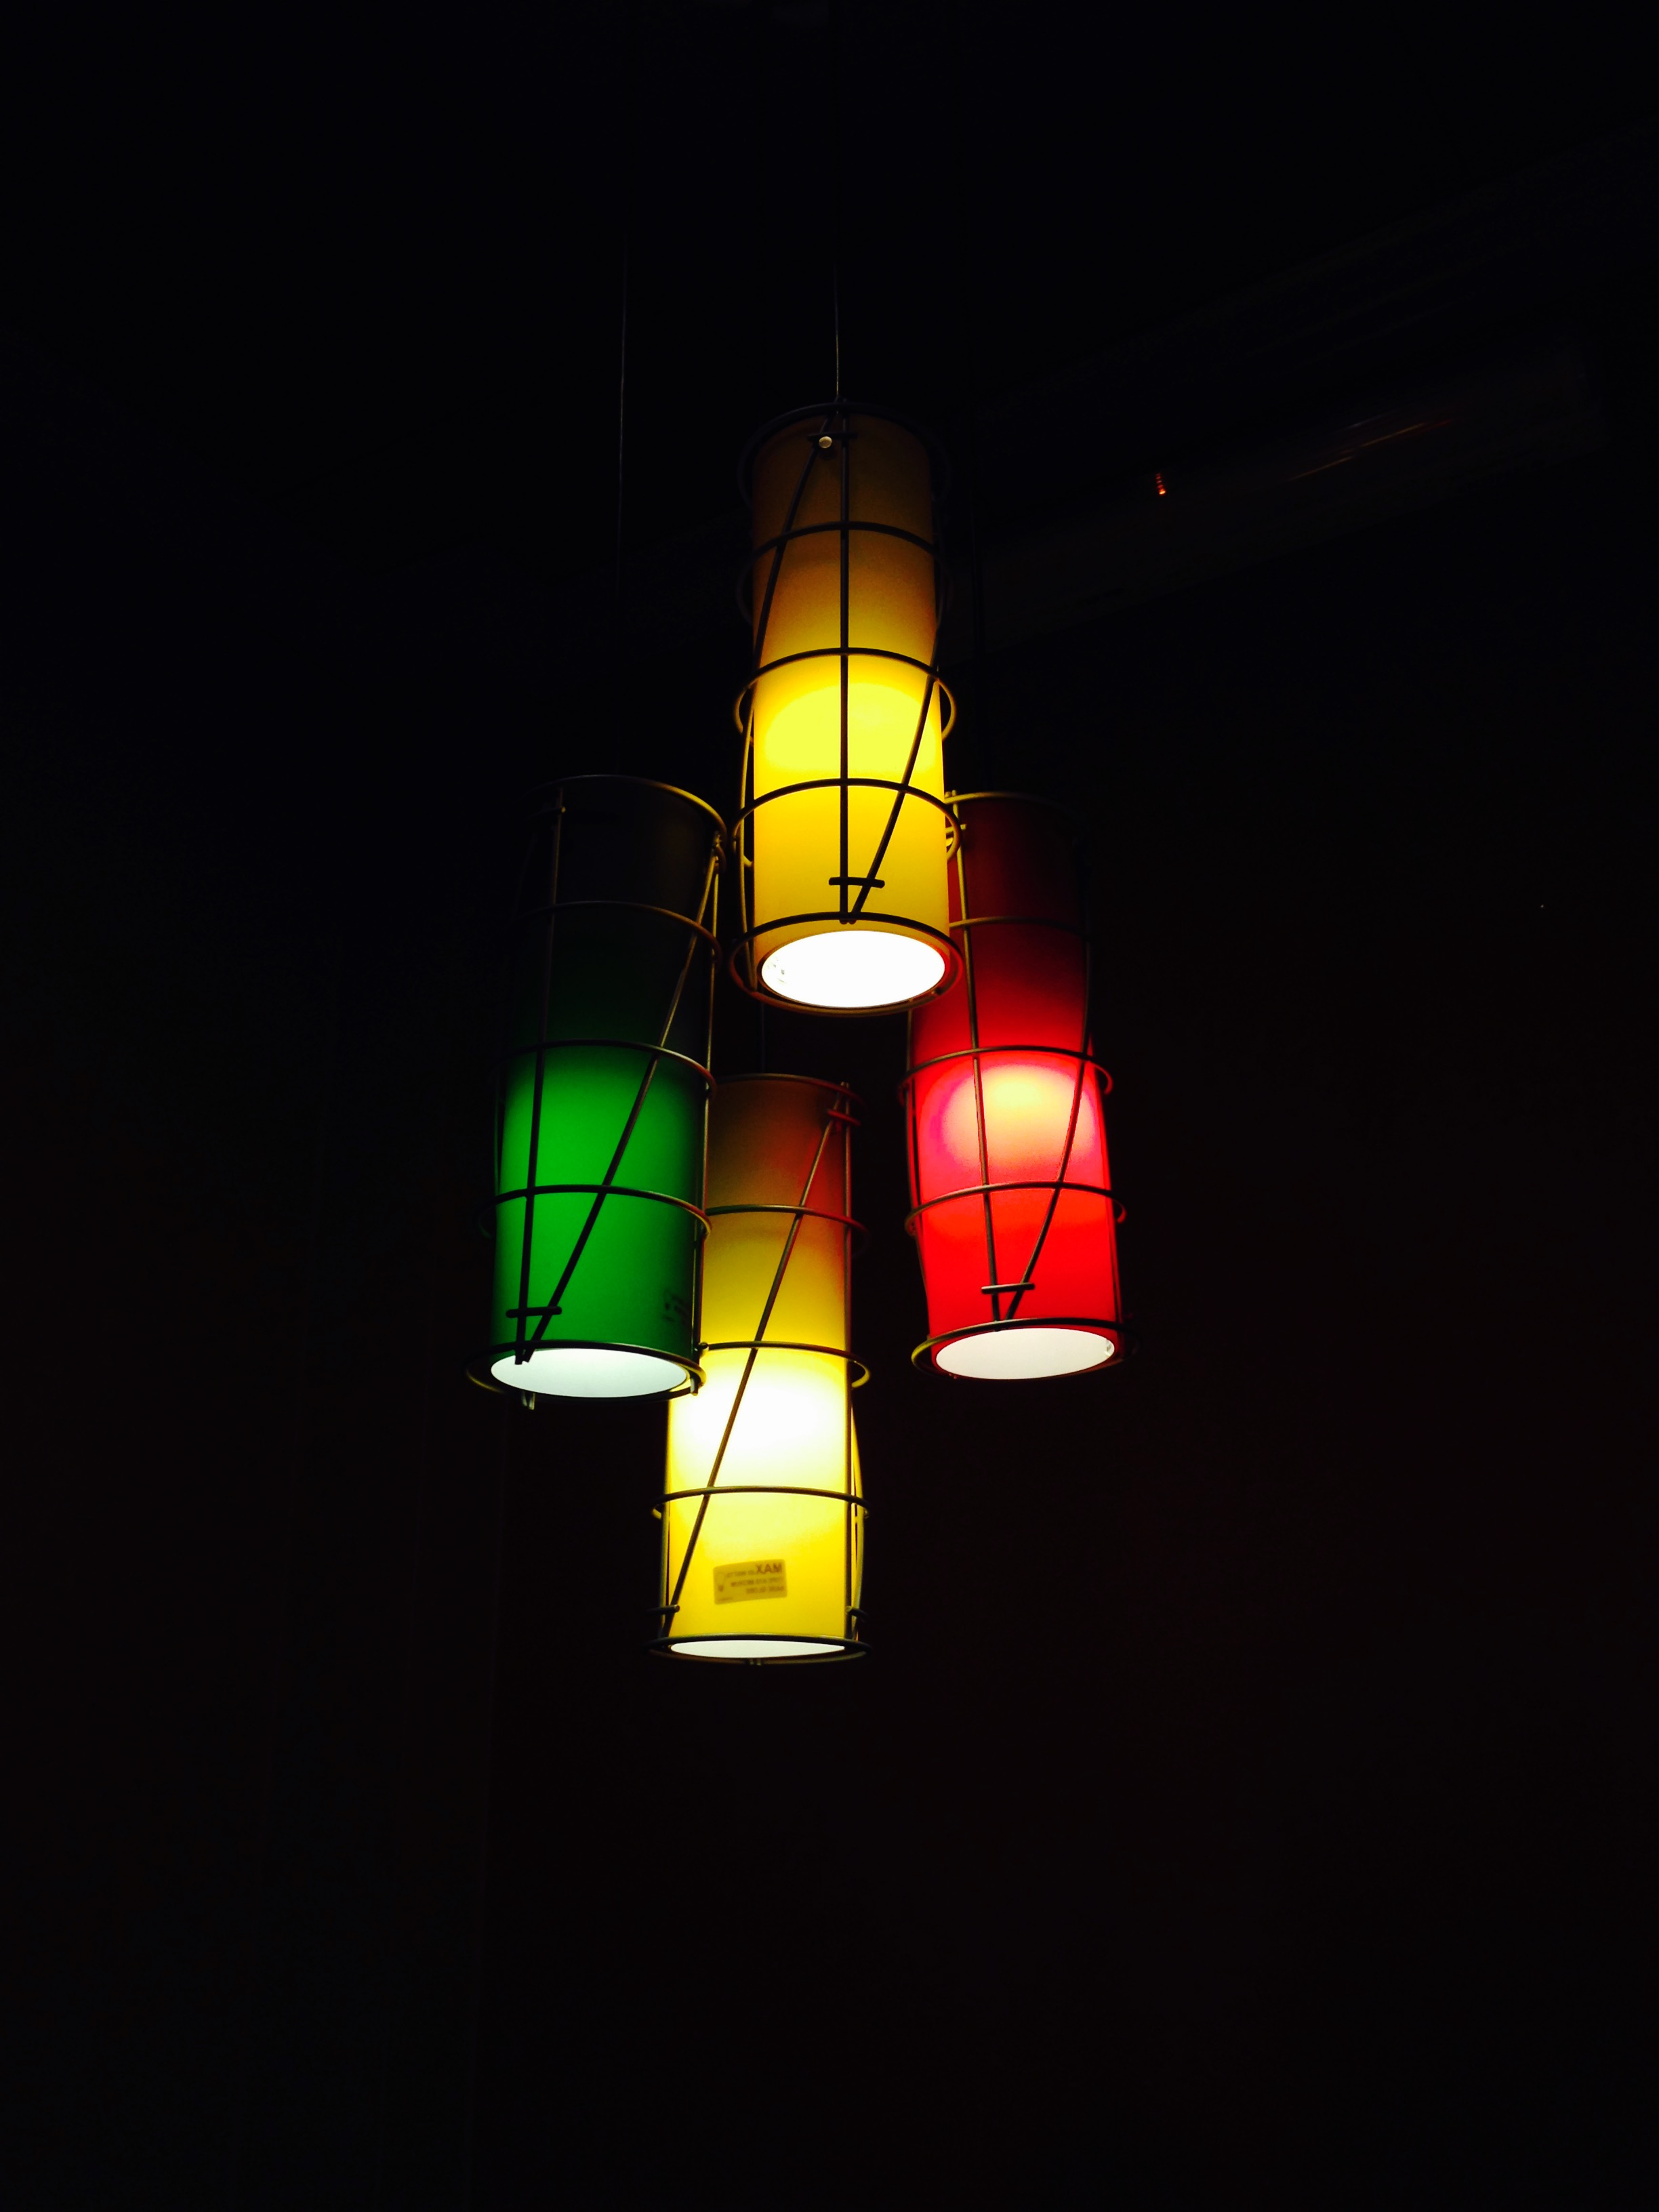 Applebees Interior Lights The Four  STORIES OF THE